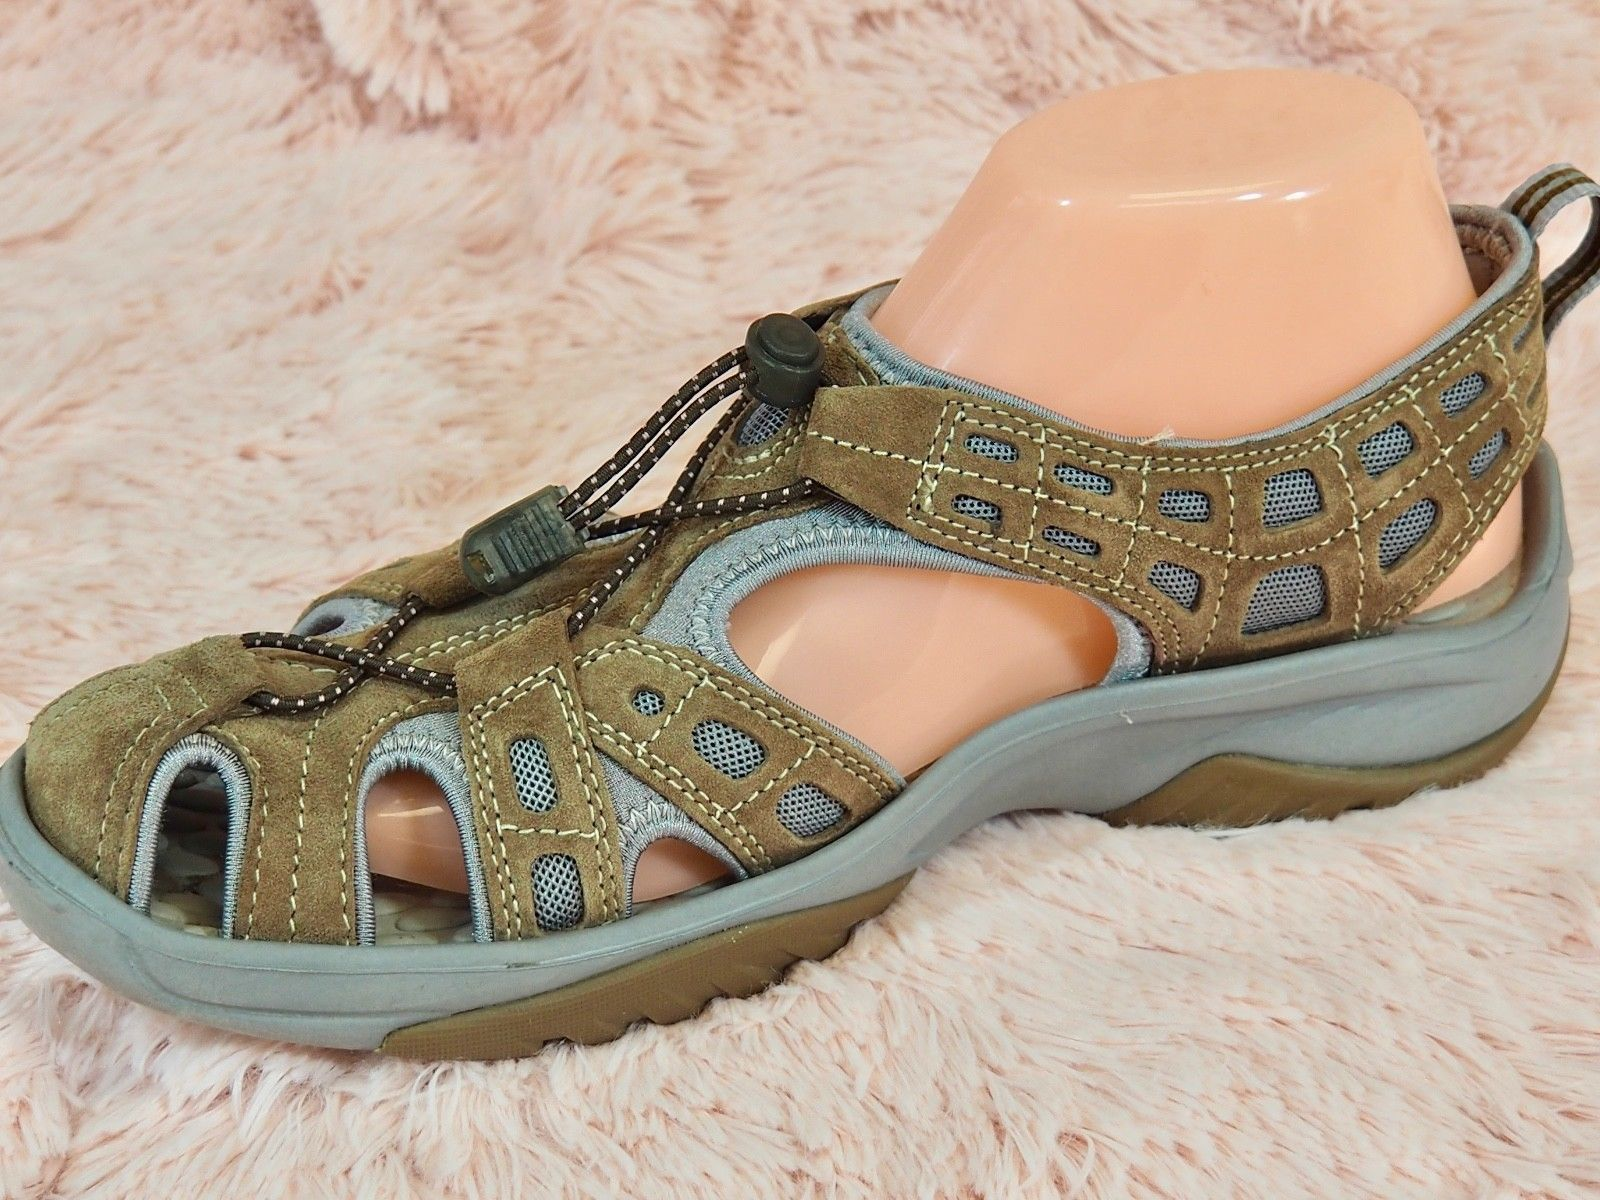 979fc0d09 PRIVO BY CLARKS Sport Sandals Fisherman and 50 similar items. S l1600